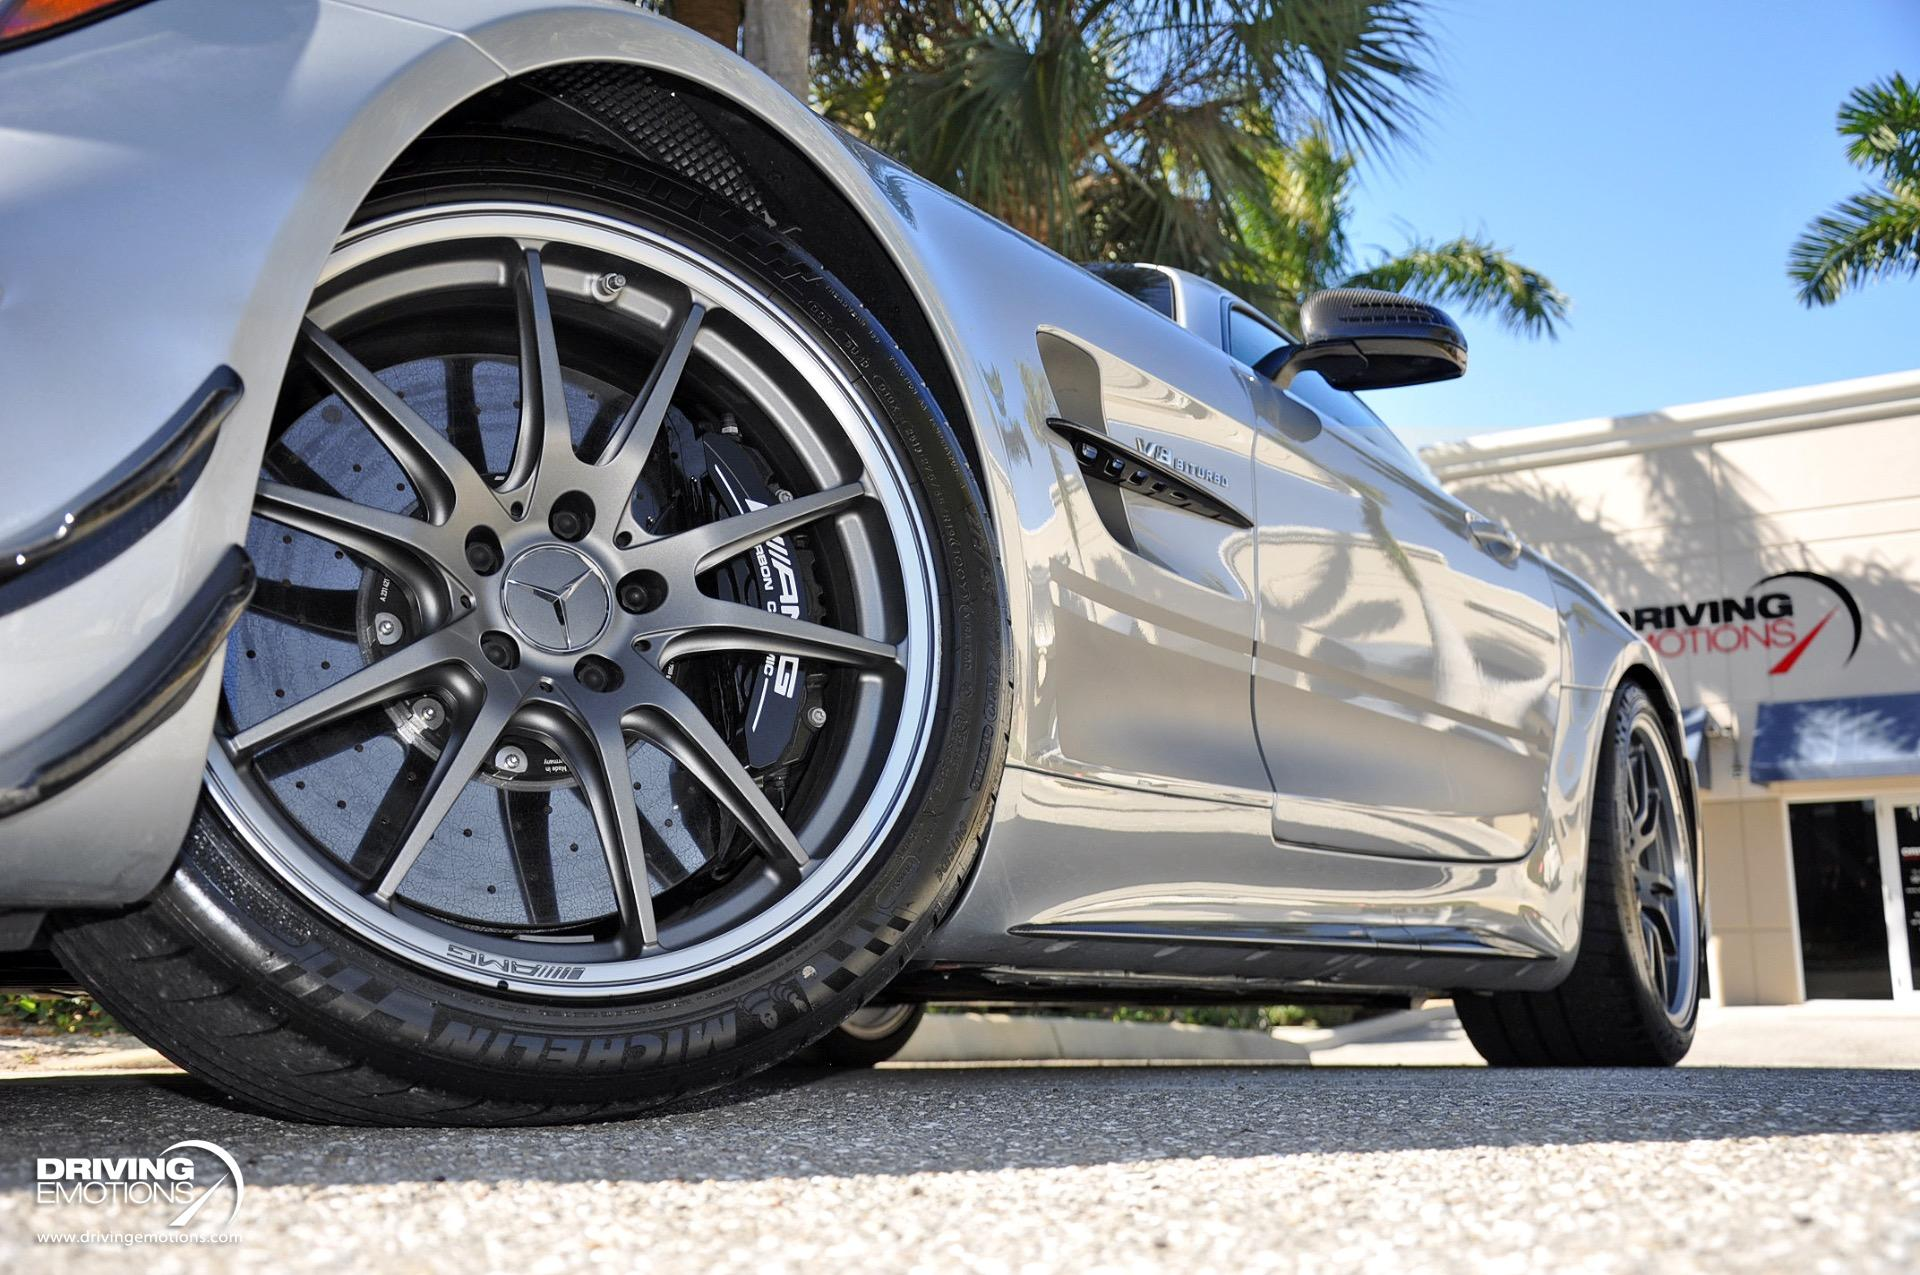 Used 2020 Mercedes-Benz AMG GT R PRO RENNtech R PRO 659HP! $211k MSRP!! | Lake Park, FL